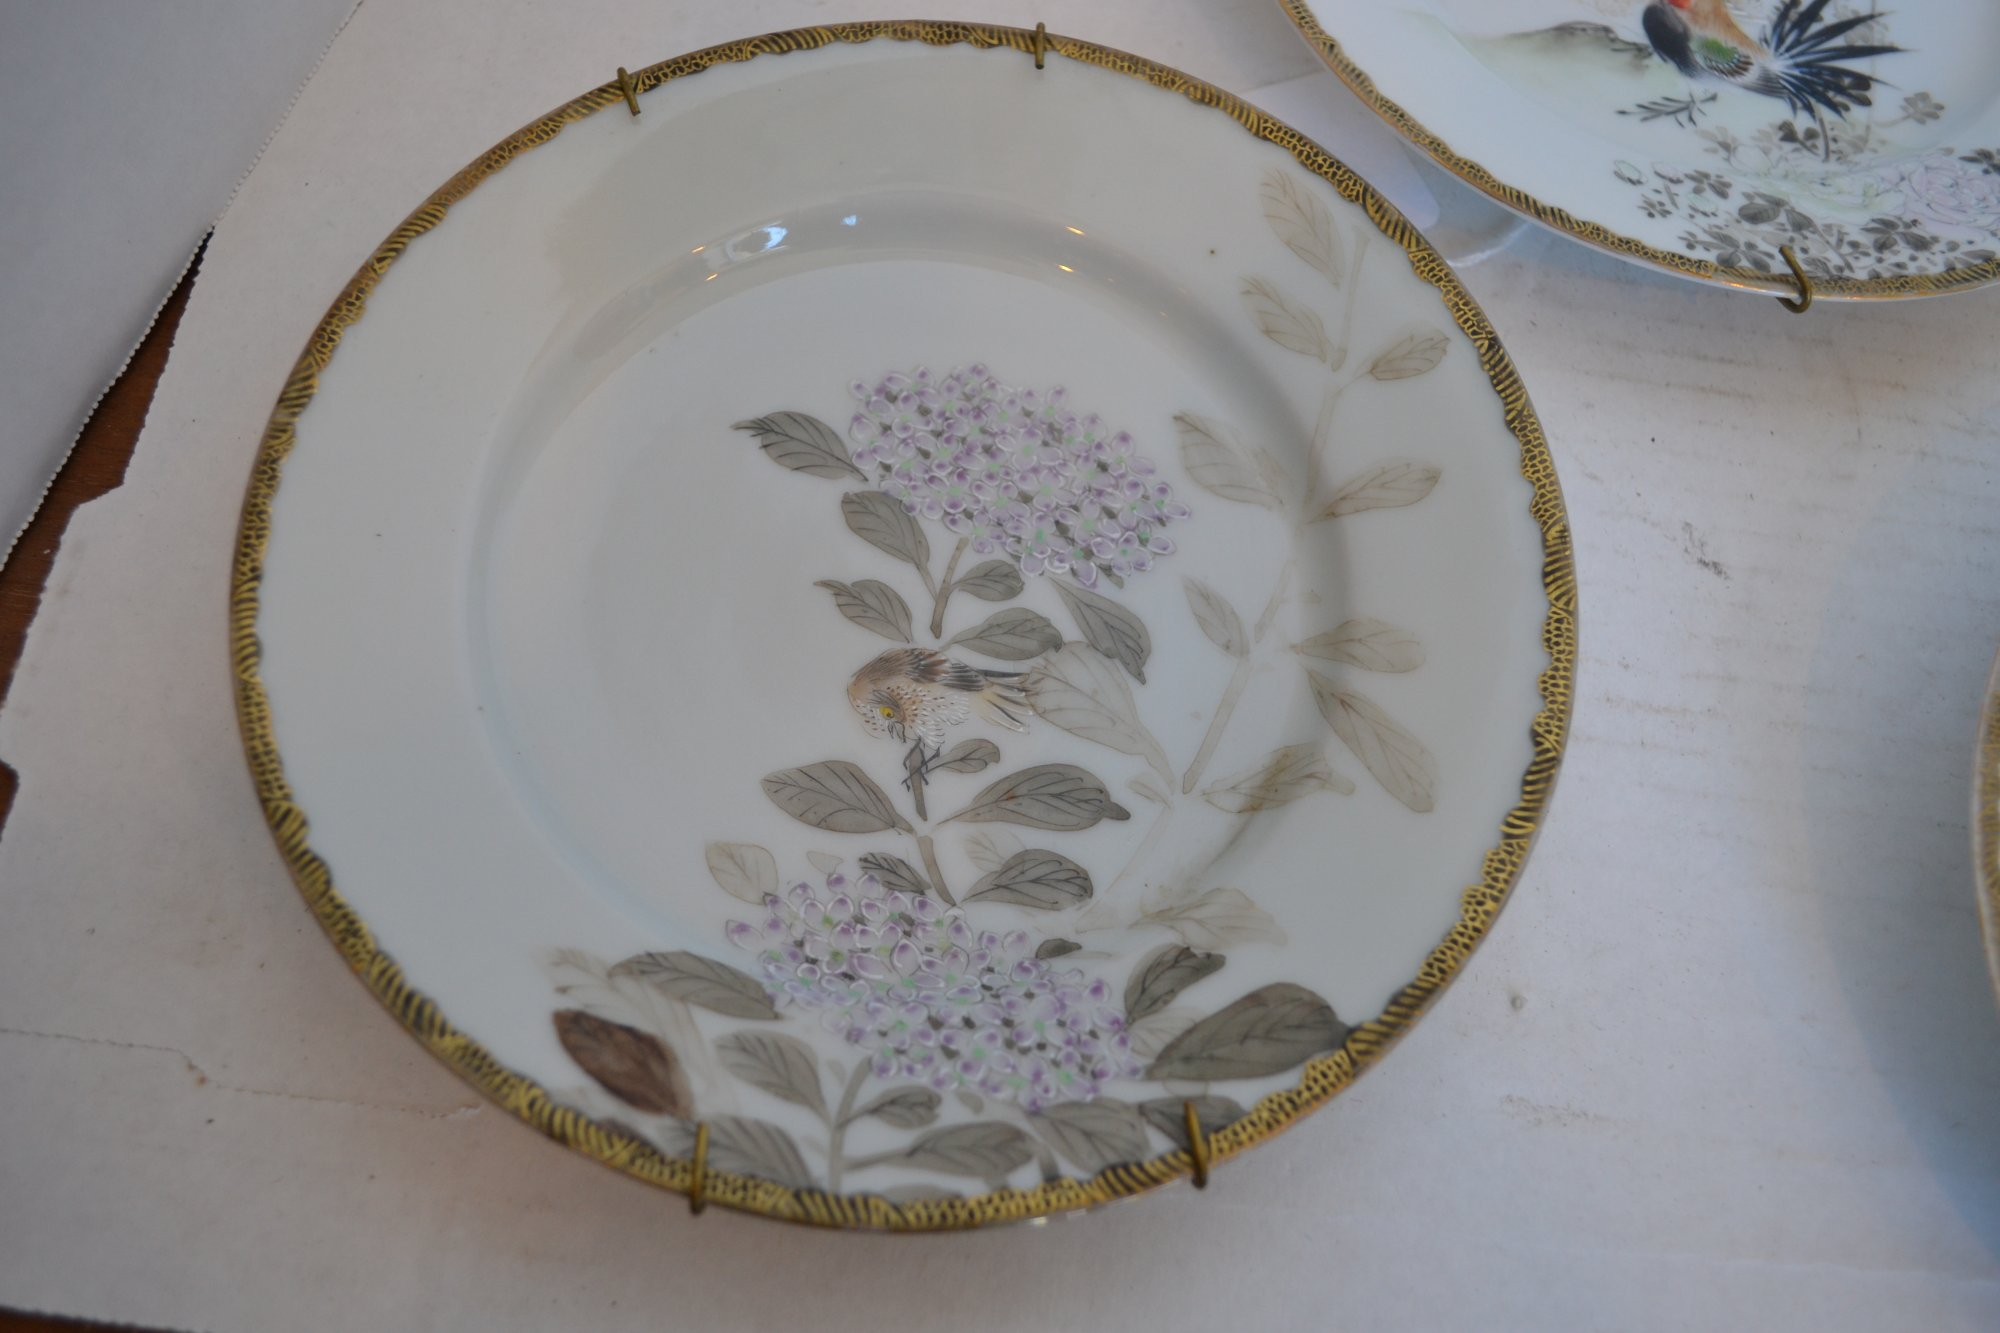 20th Century Japanese 4 plates w/ plate hangers, all with birds (set of 4) Dia. 7